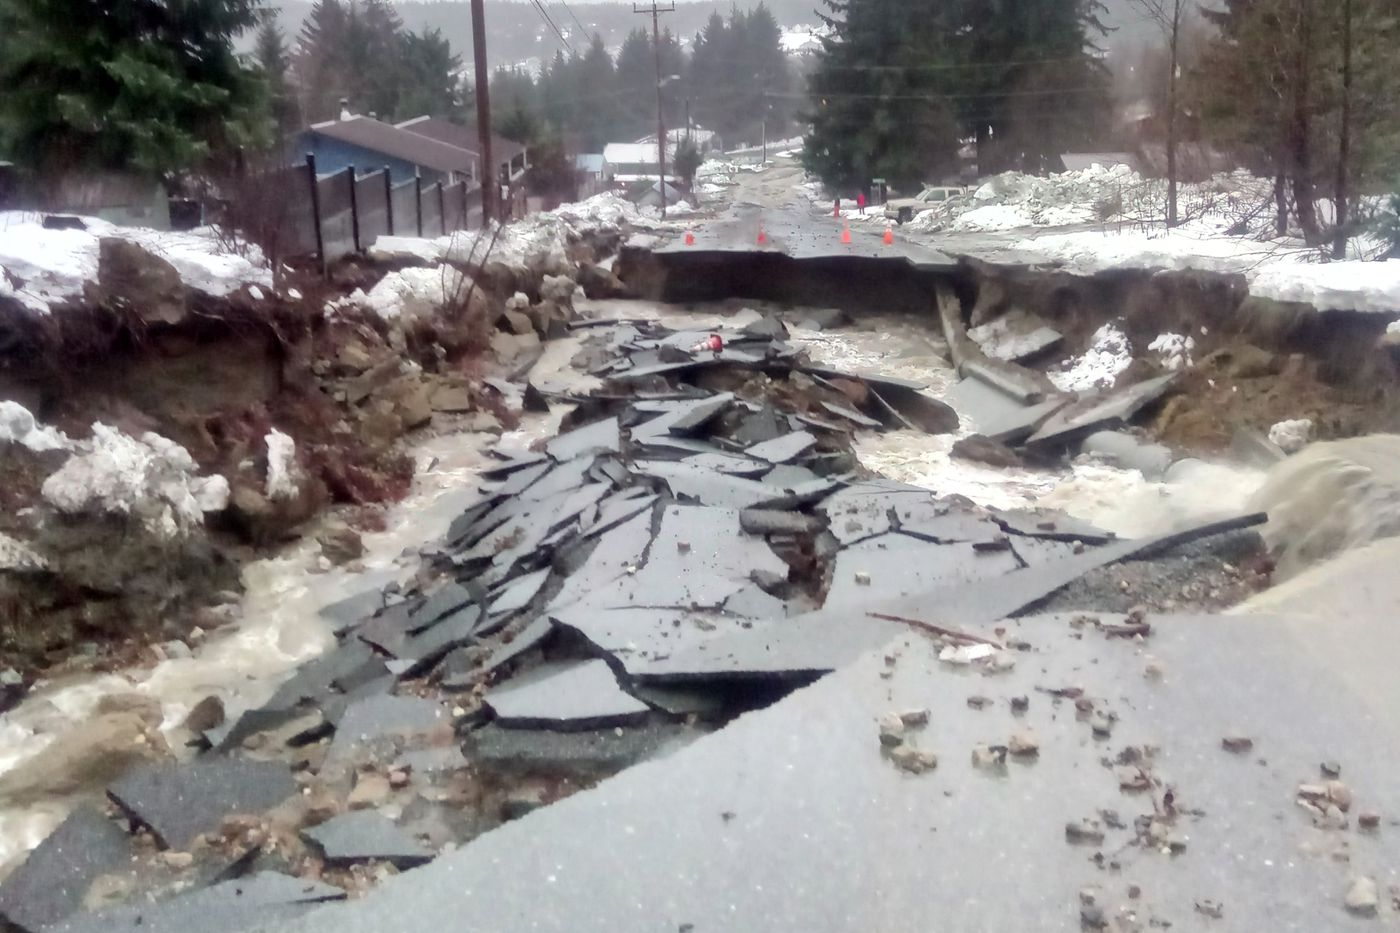 Many roads have been heavily damaged in Haines after heavy rain and flooding, Dec. 2, 2020. (Photo provided by Darwin Feakes)